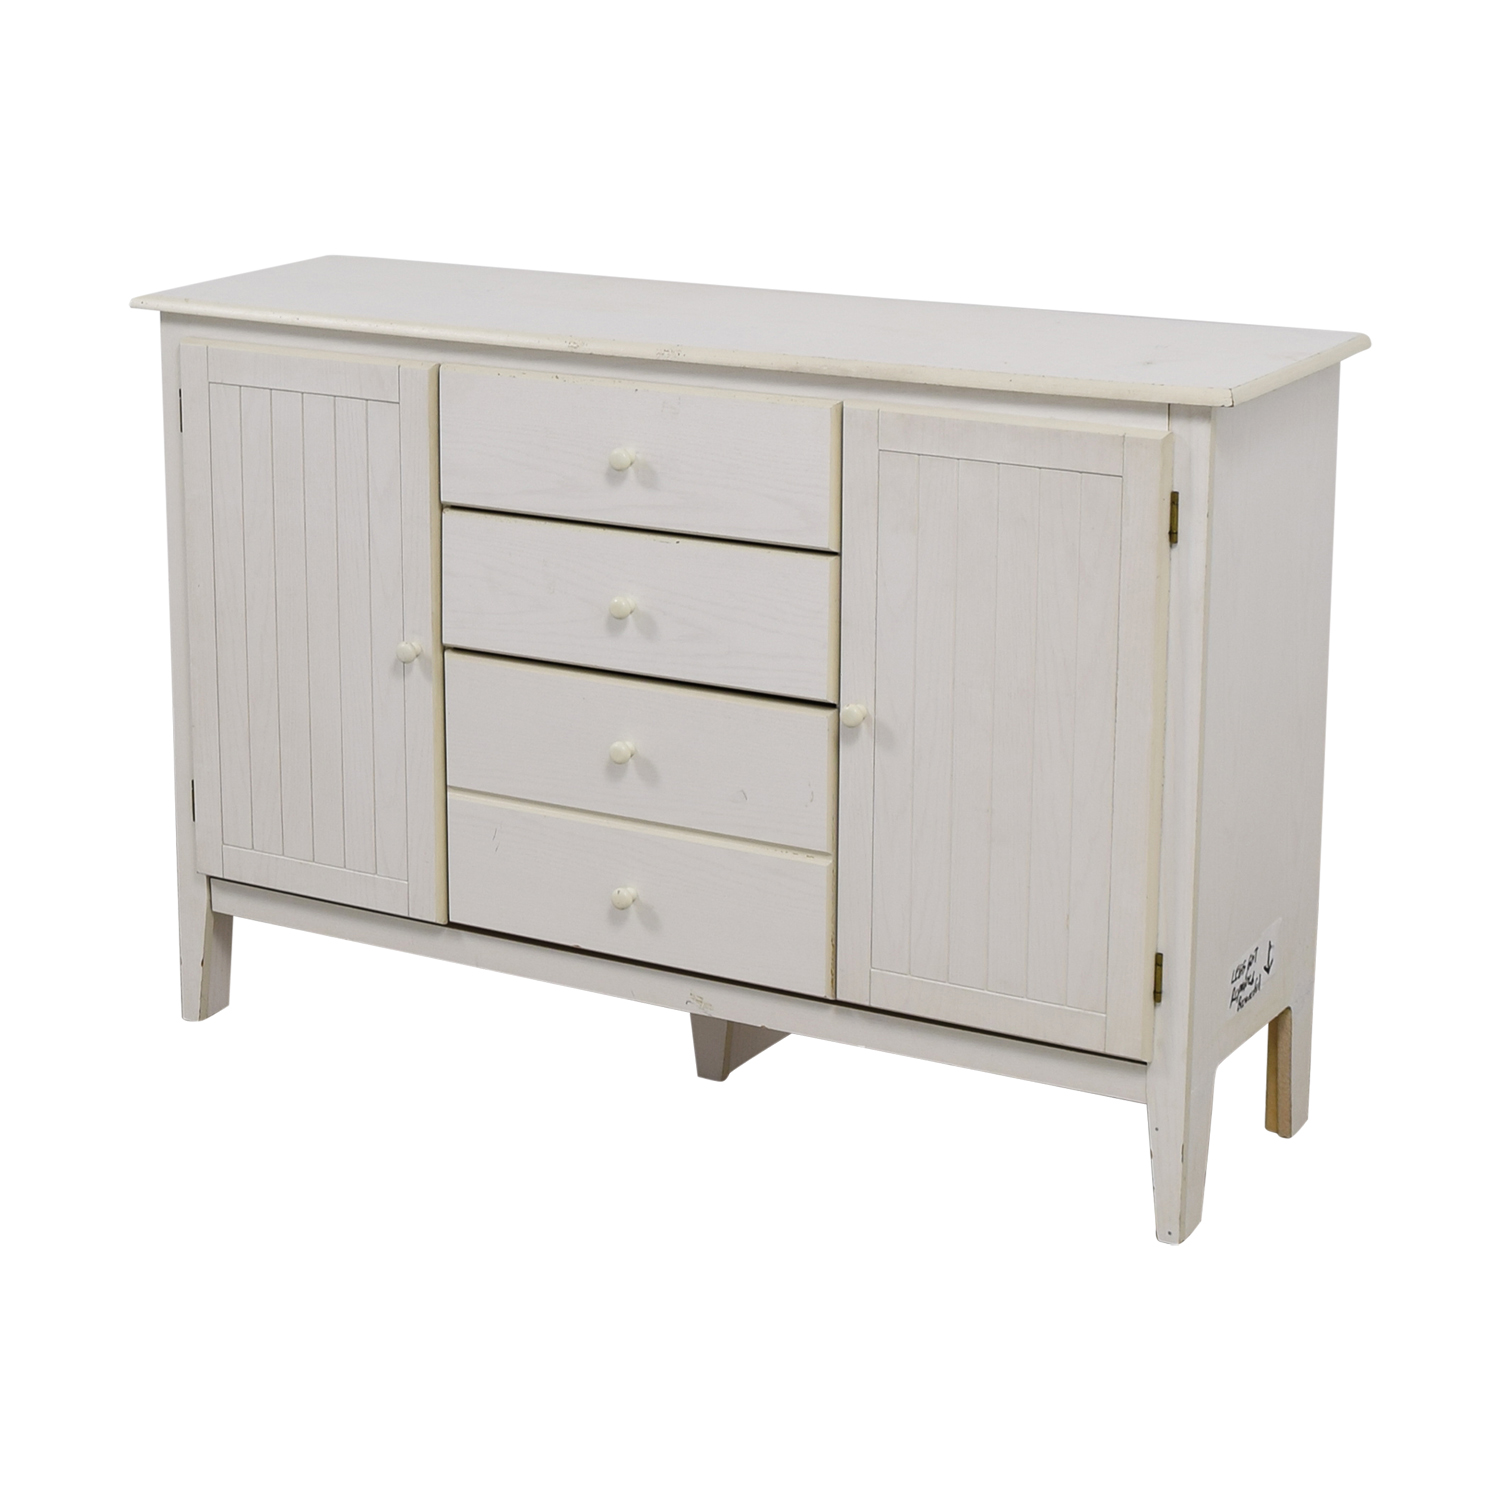 Shabby Chic White Cabinet / Tables